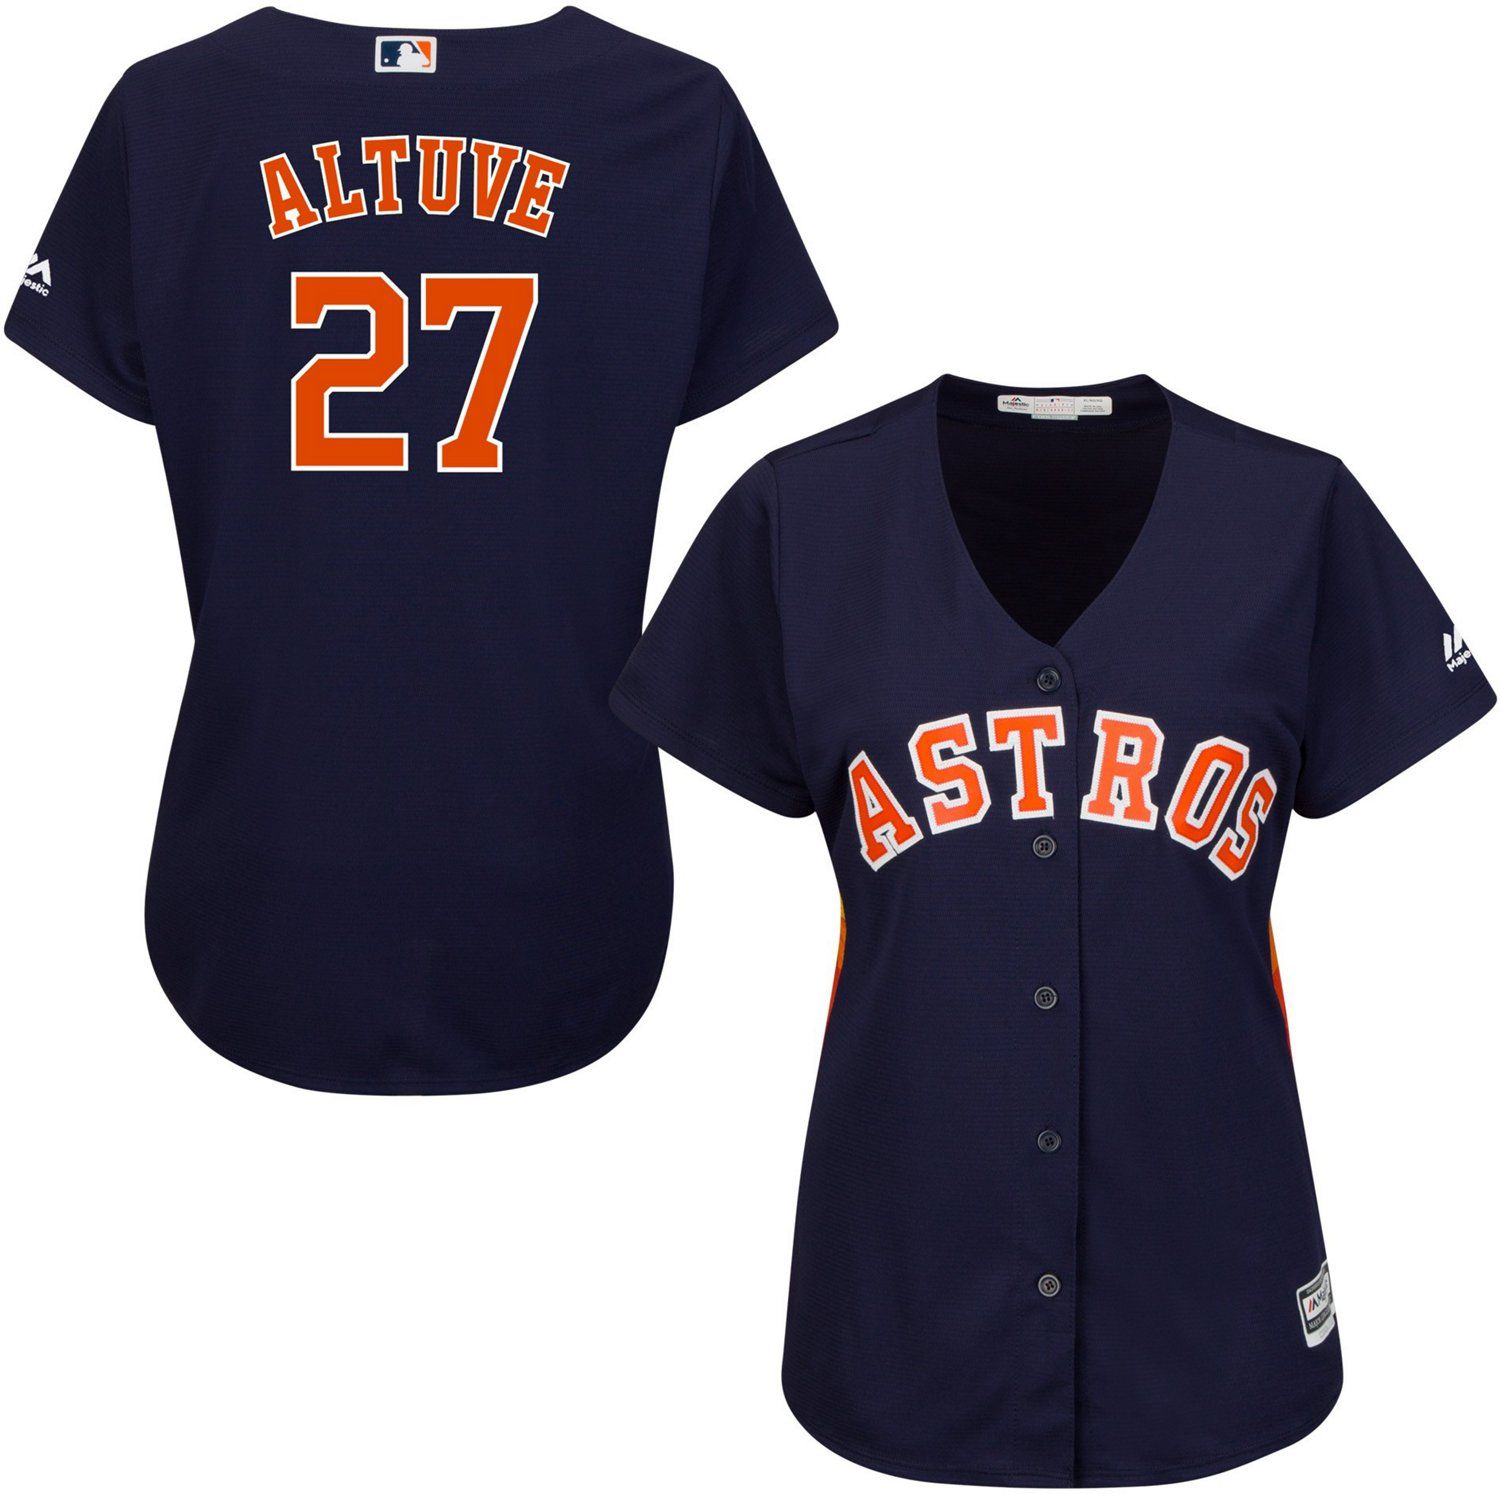 promo code c7e3b d21b9 Majestic Women's Houston Astros Jose Altuve 27 COOL BASE Jersey